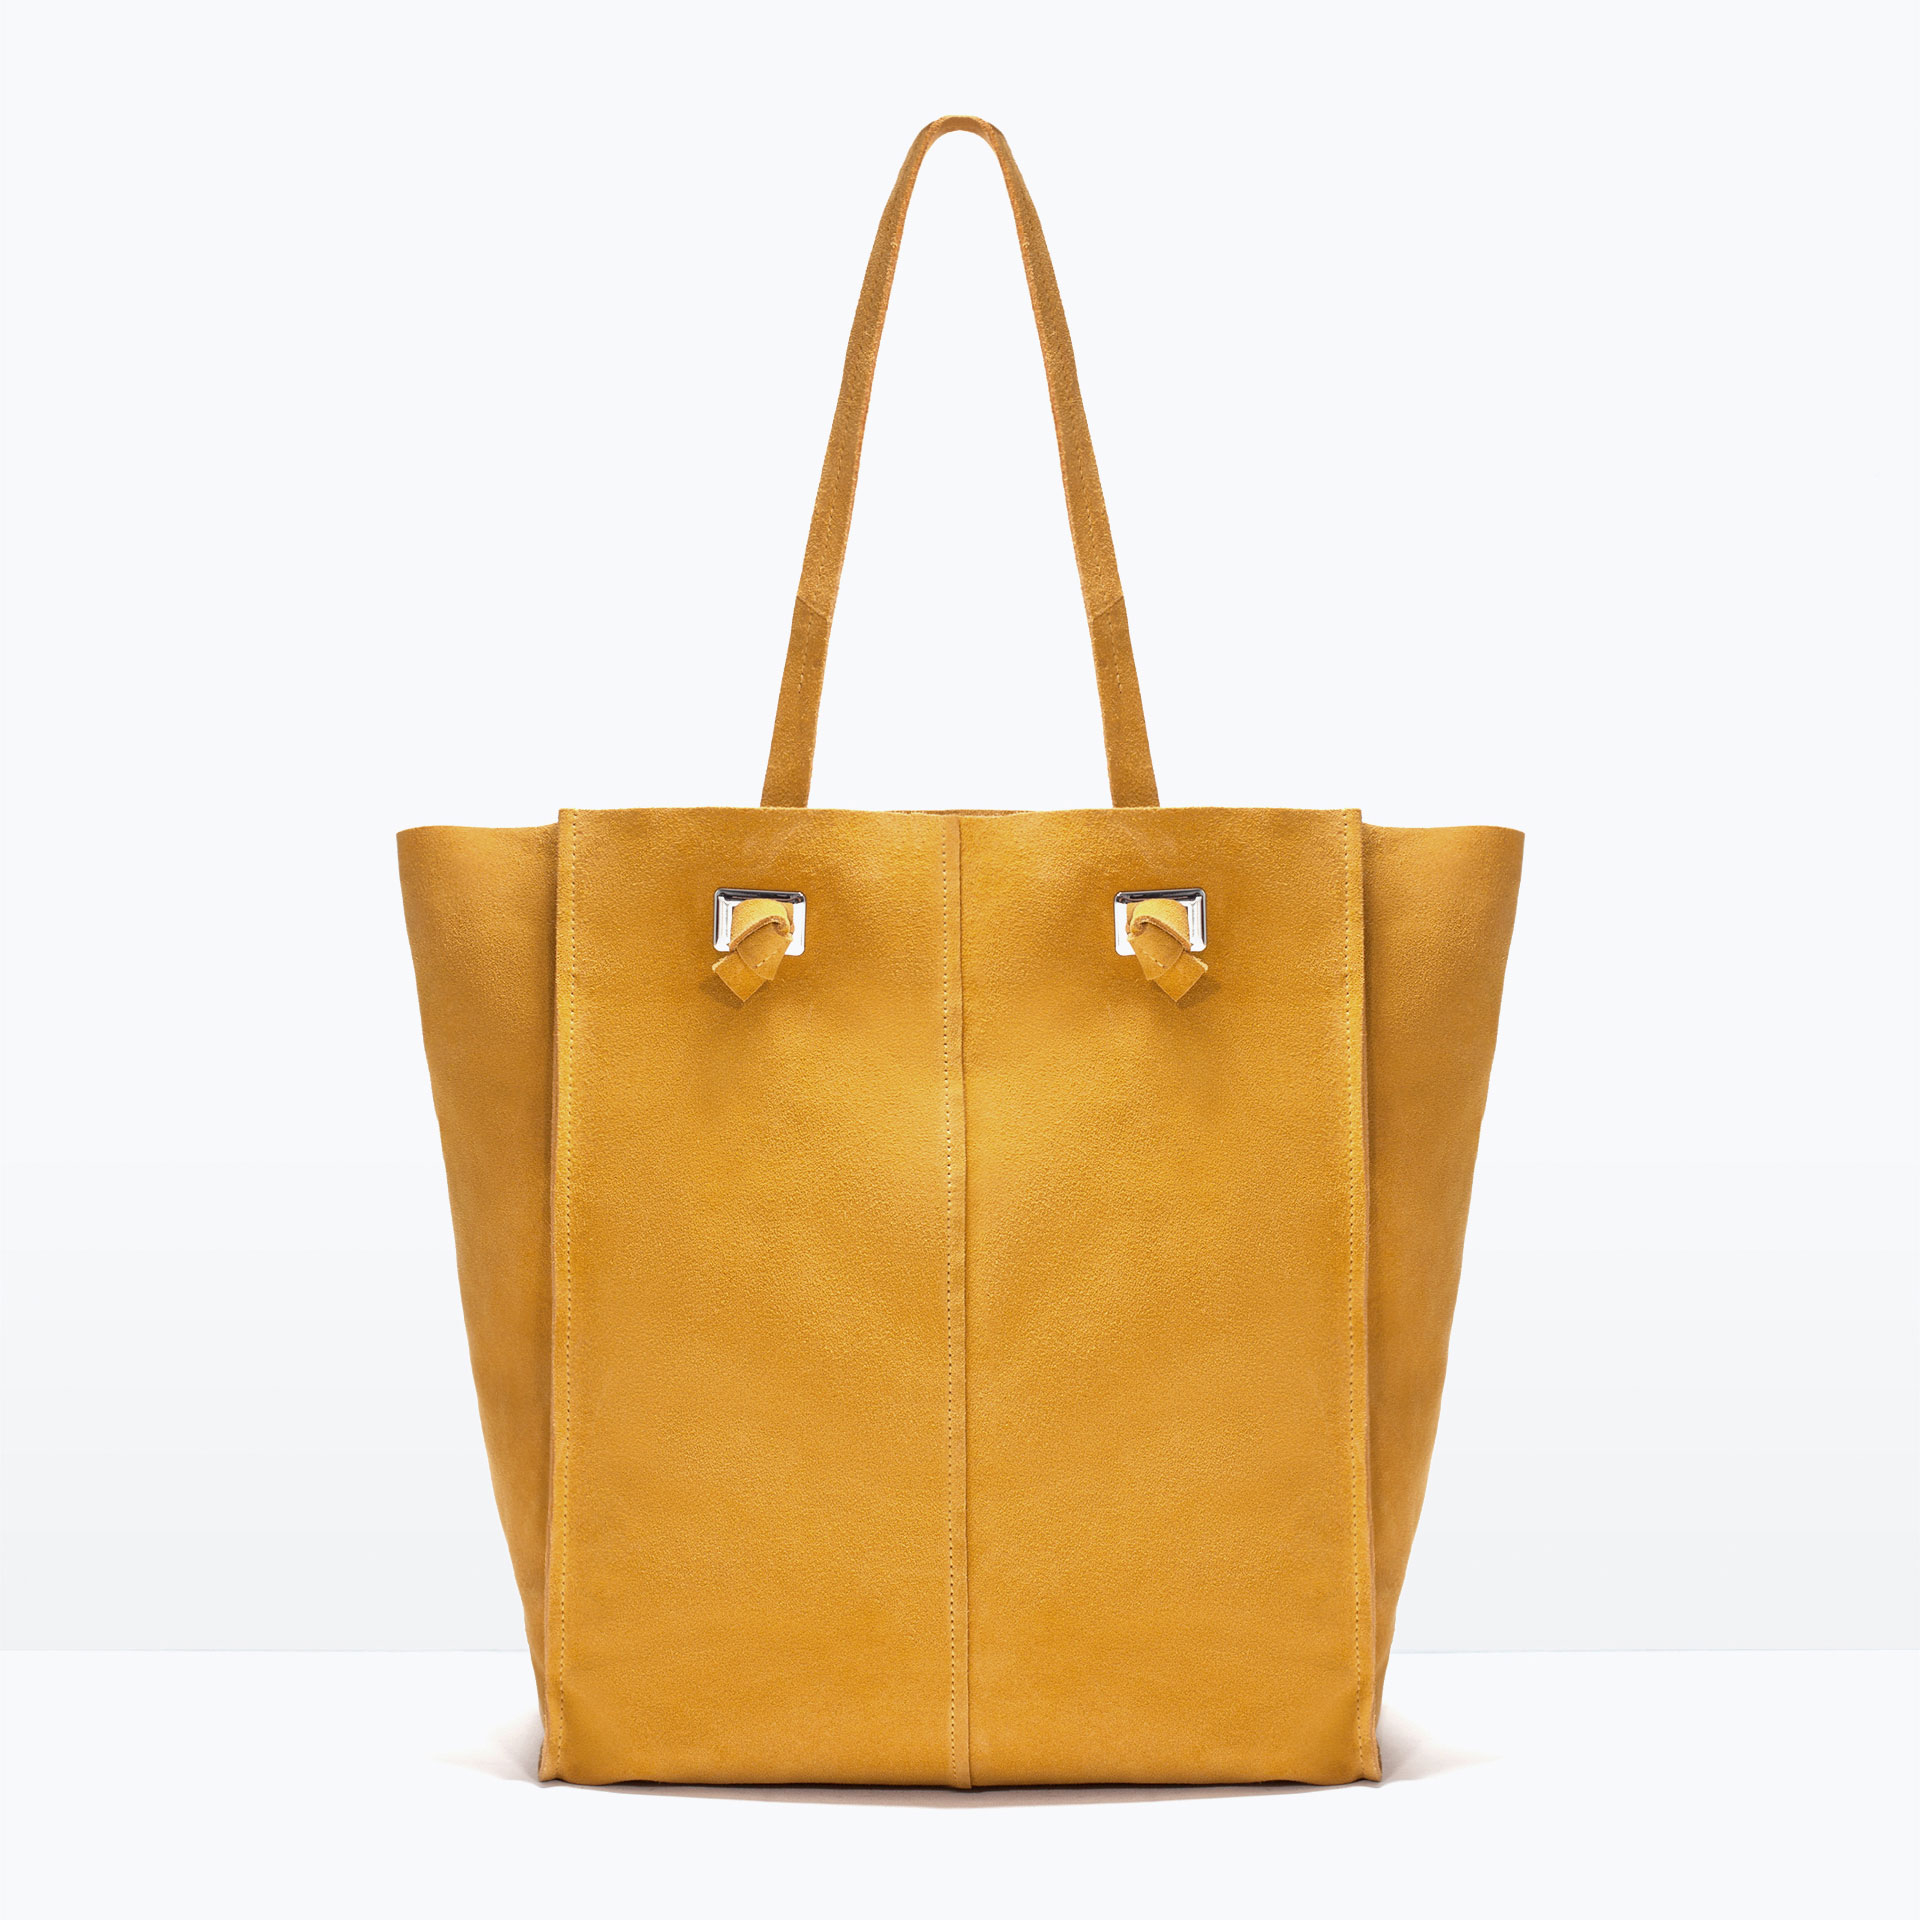 Zara Suede Shopper Bag in Yellow (Mustard) | Lyst